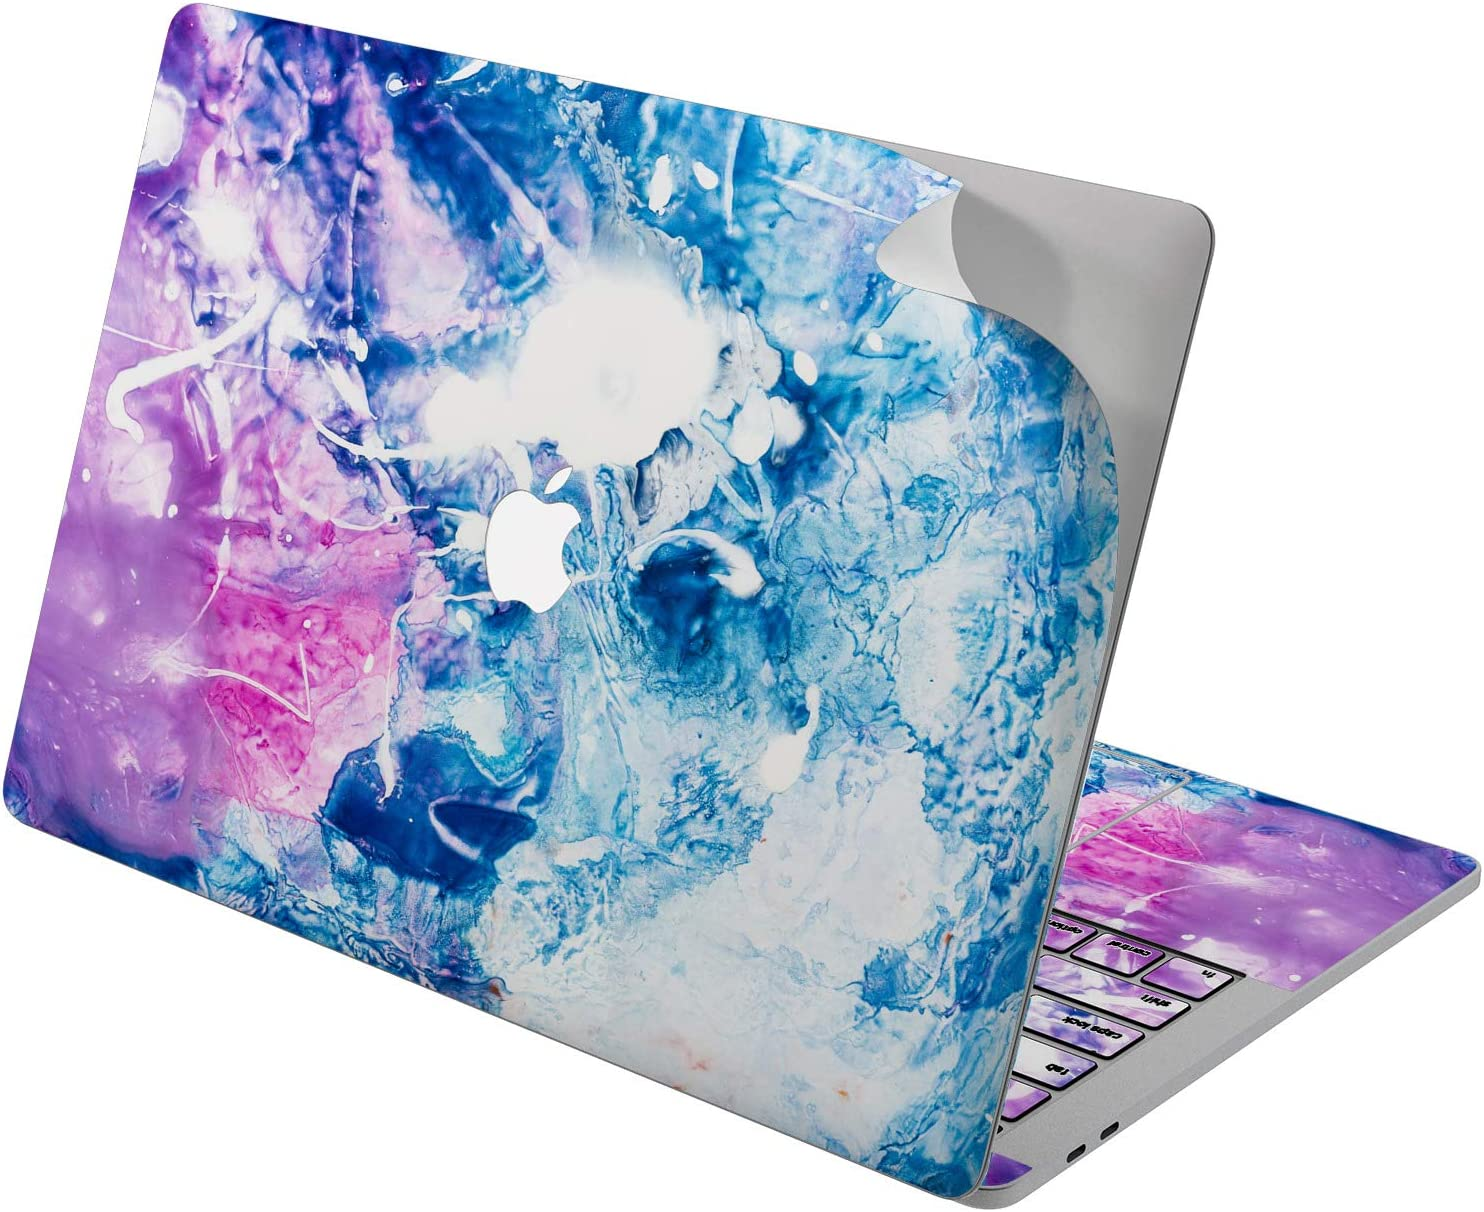 "Cavka Vinyl Decal Skin for Apple MacBook Pro 13"" 2019 15"" 2018 Air 13"" 2020 Retina 2015 Mac 11"" Mac 12"" Abstract Trendy Laptop Print Protective Cover Painting Blue Design Pattern Pink Modern Sticker"